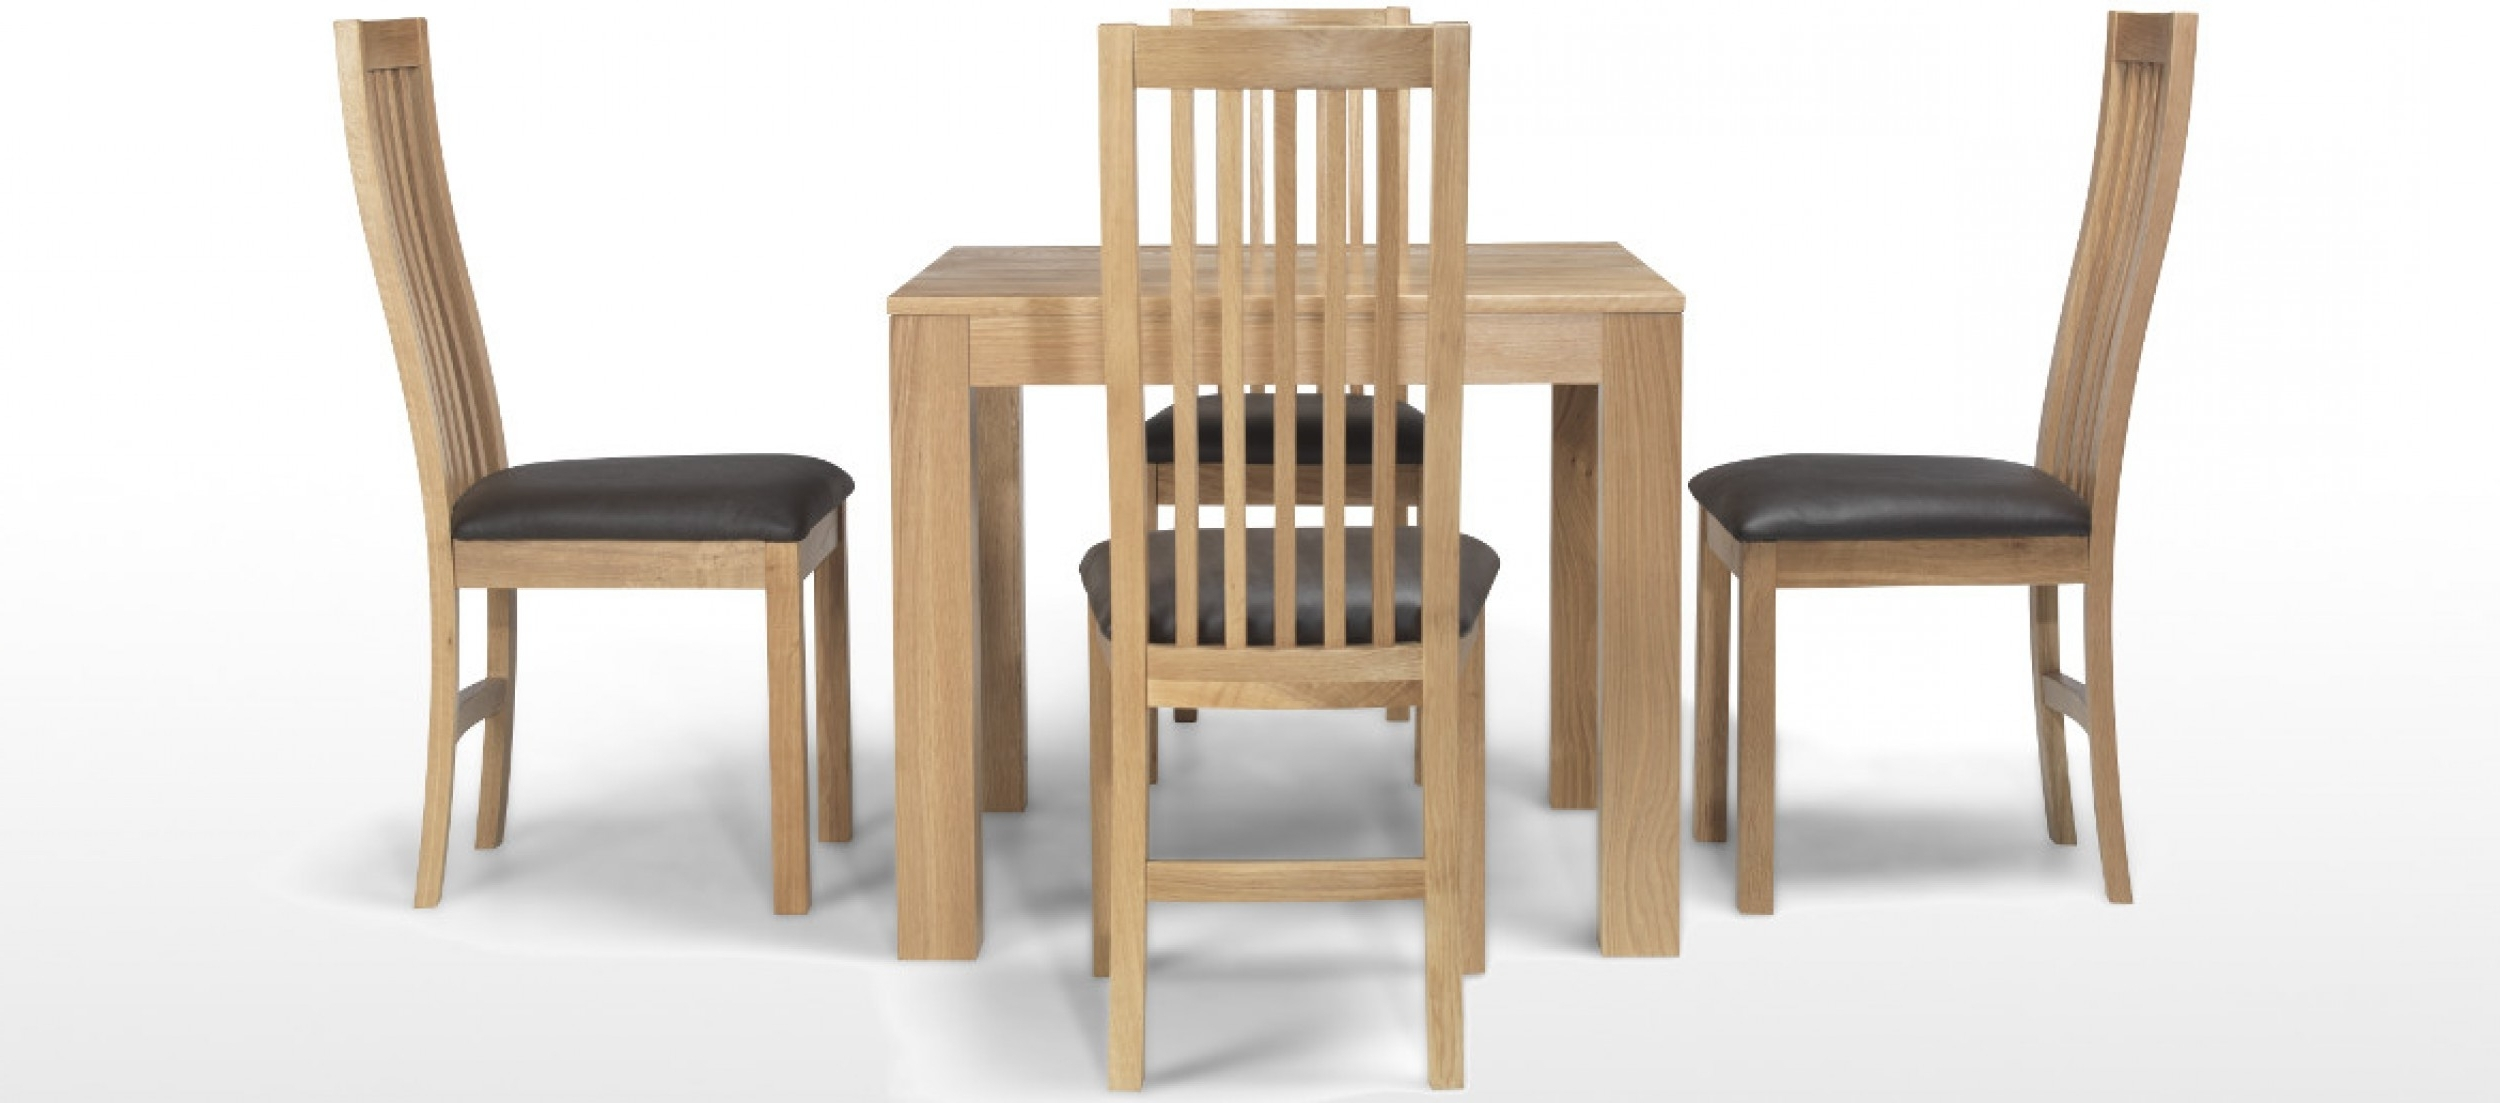 Best And Newest Extendable Dining Tables With 6 Chairs Inside Cube Oak 90 Cm Dining Table And 4 Chairs (Gallery 15 of 25)